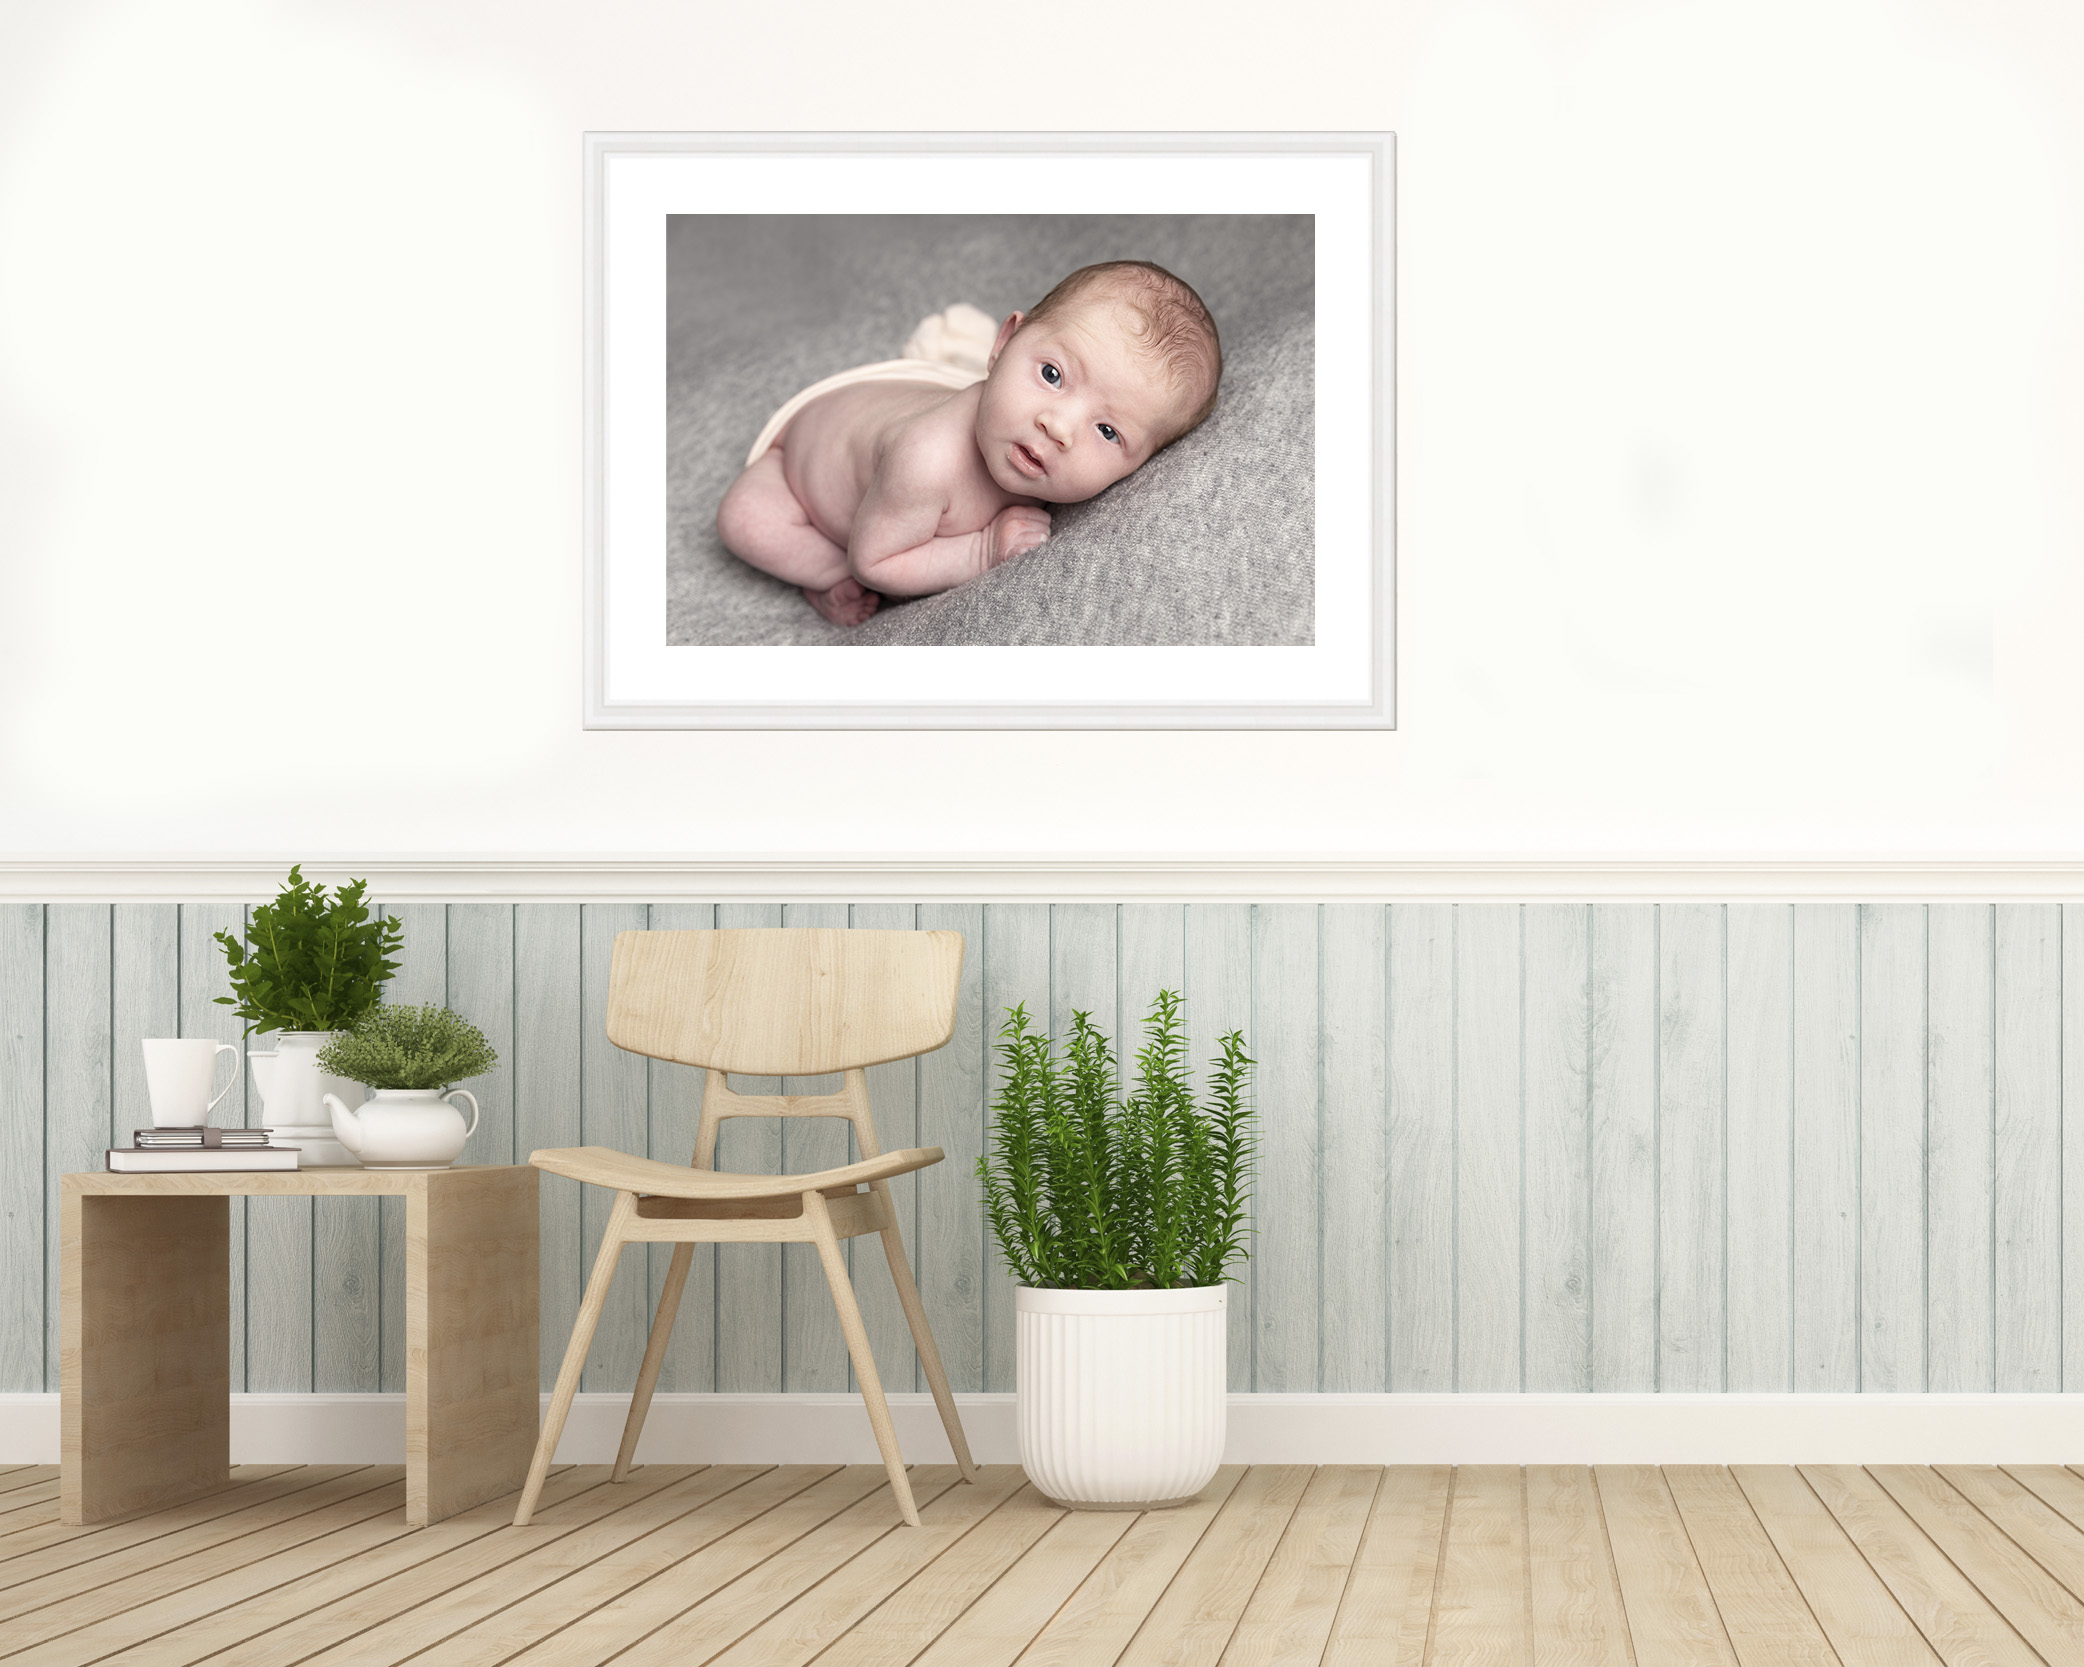 framed image of baby on a wall